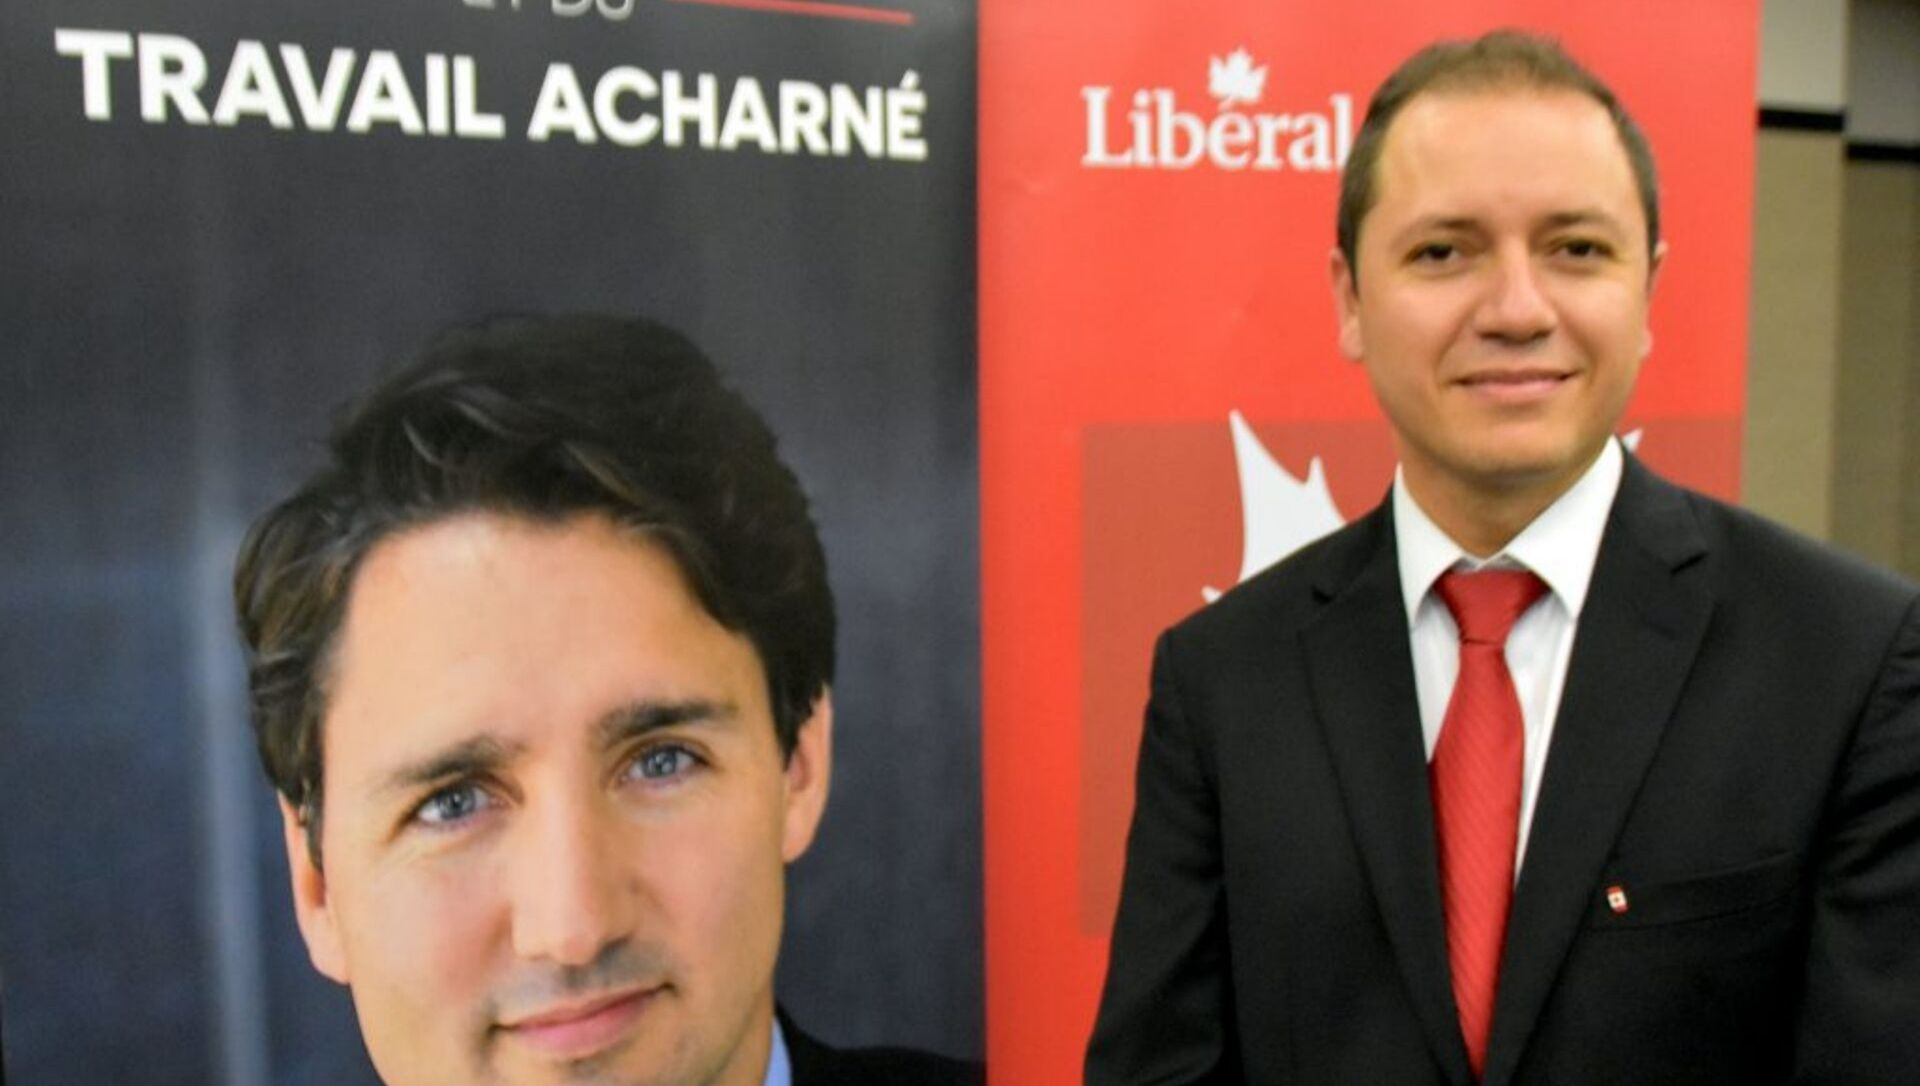 Former cocaine trafficker and wife show up to support the candidacy of Liberal candidate